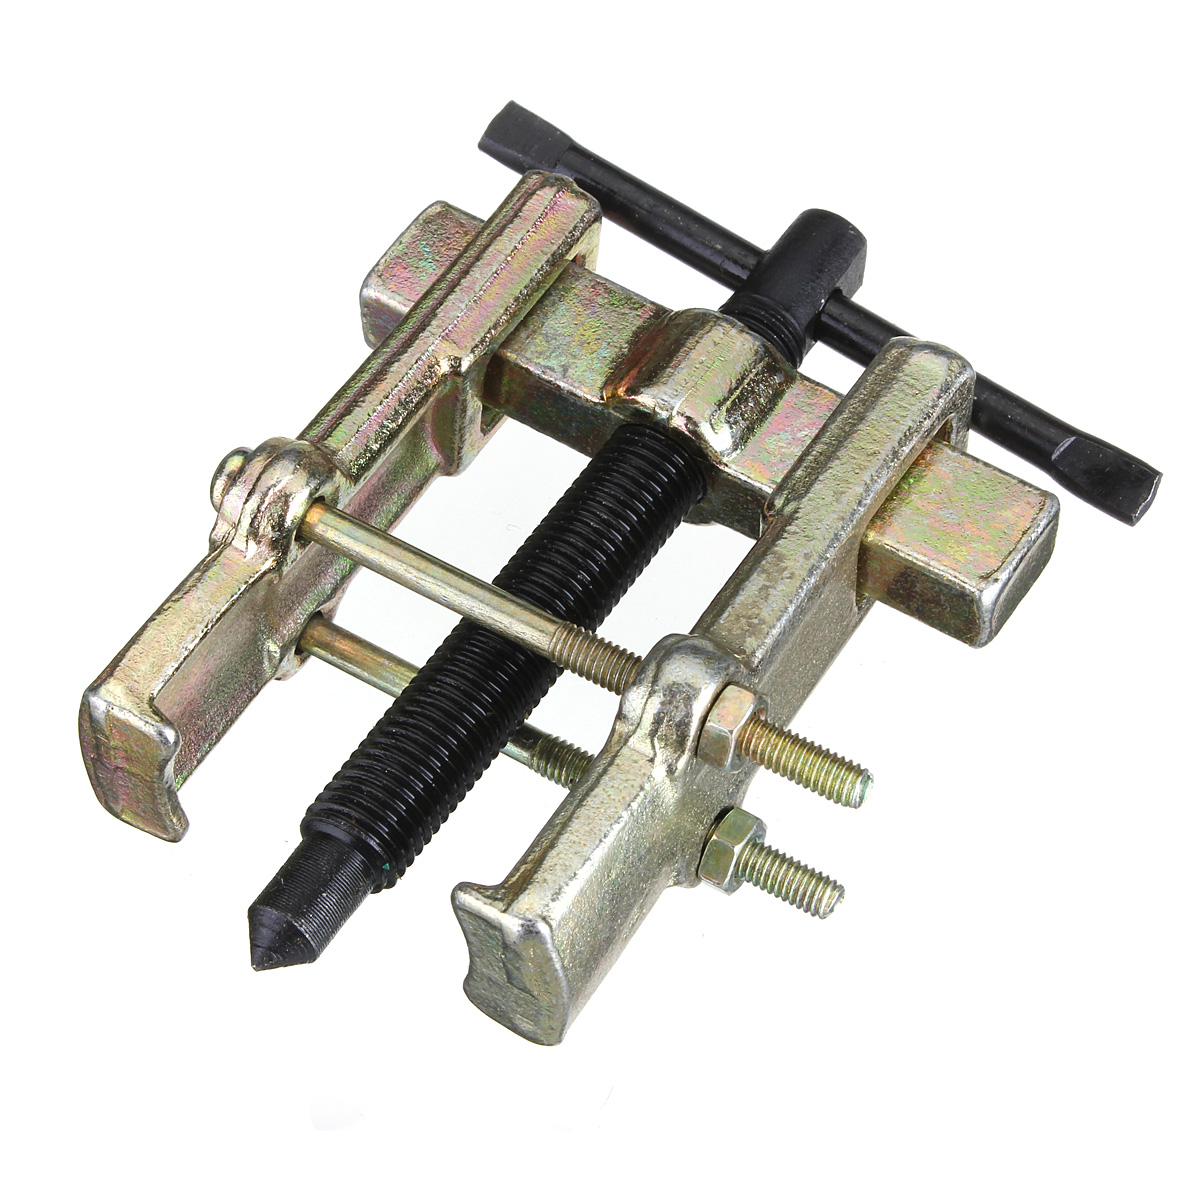 Bearing Puller Material : Mm two jaws gear puller bearing spiral